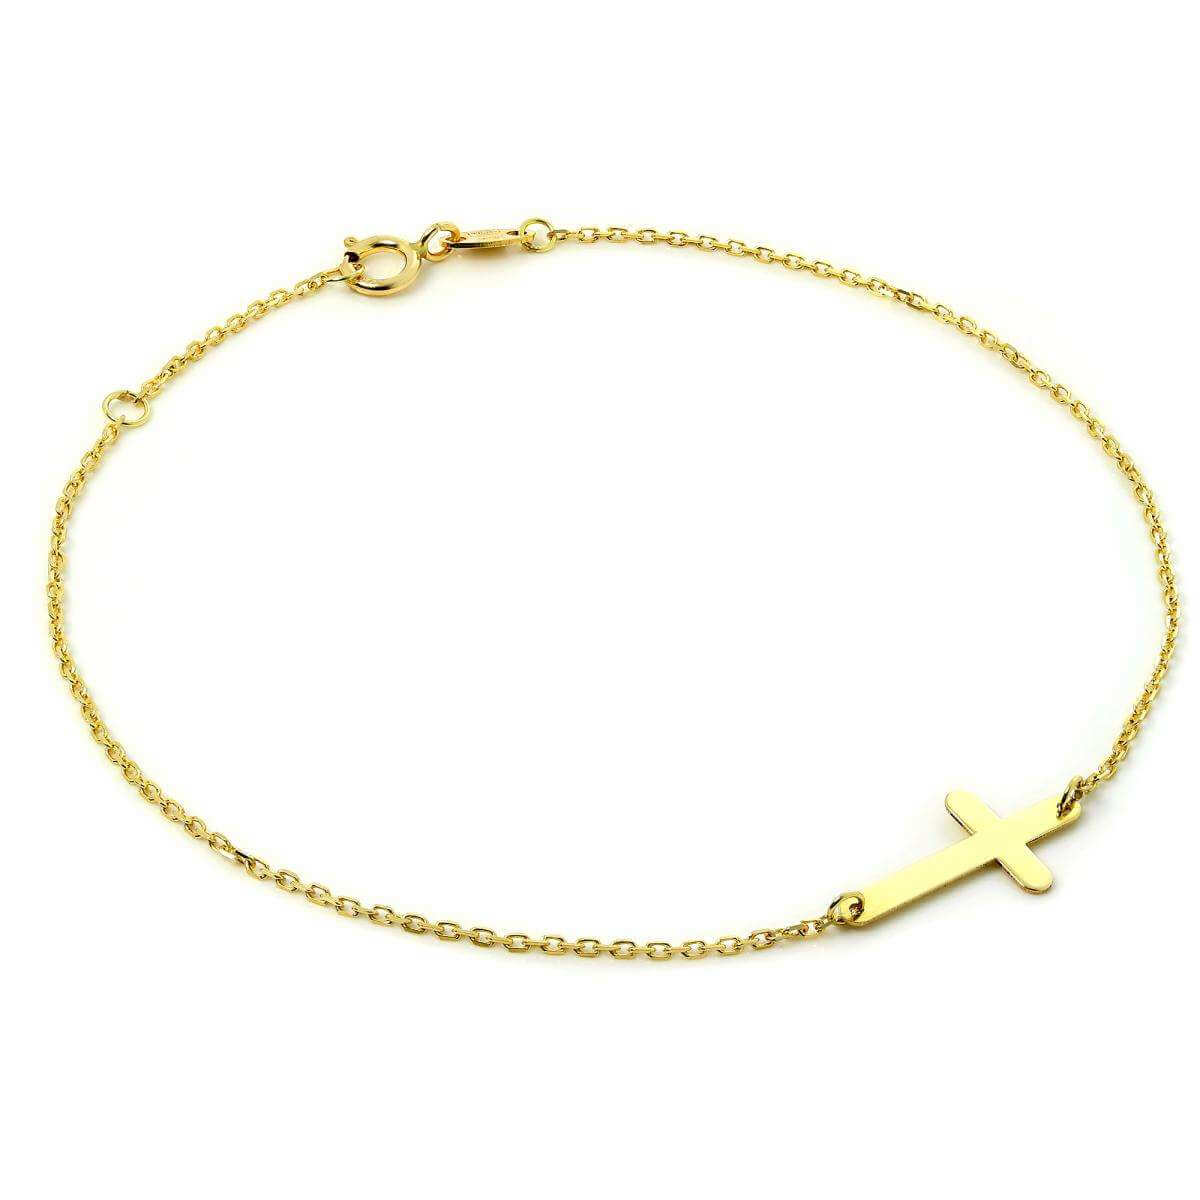 Fine 9ct Gold Trace Chain Bracelet with Cross 7.5 Inches